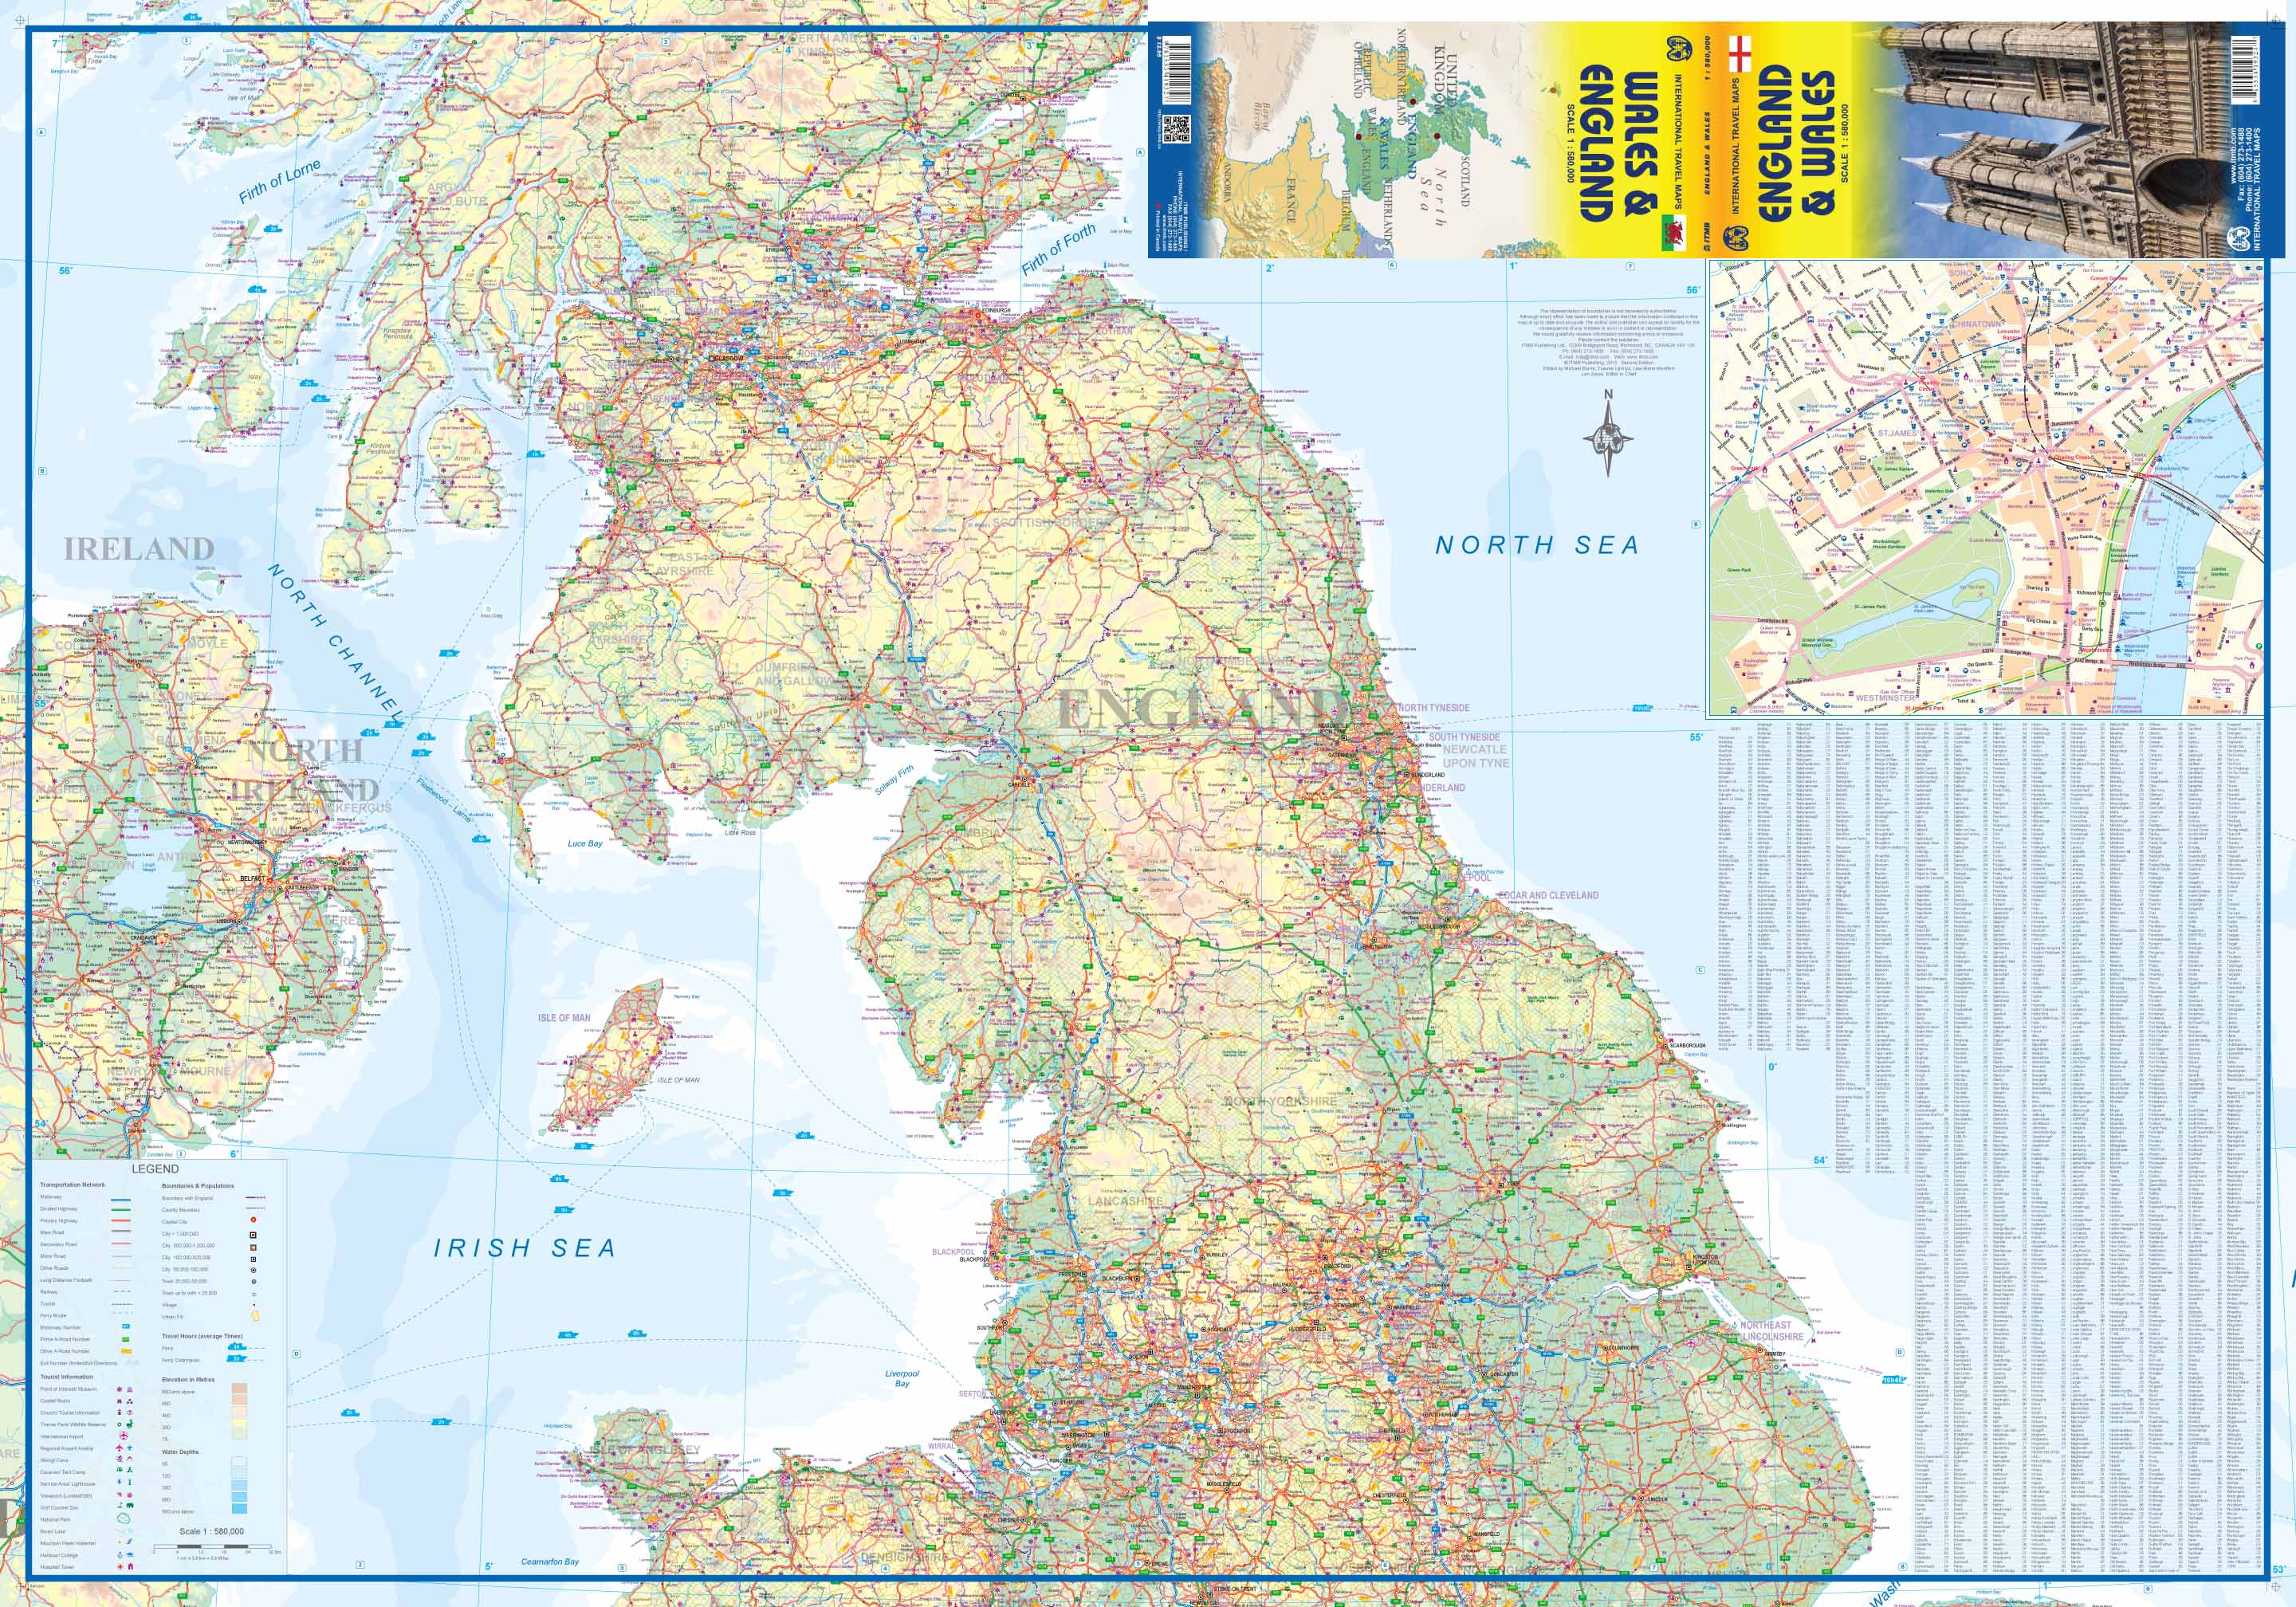 Maps for travel City Maps Road Maps Guides Globes Topographic – England Travel Map